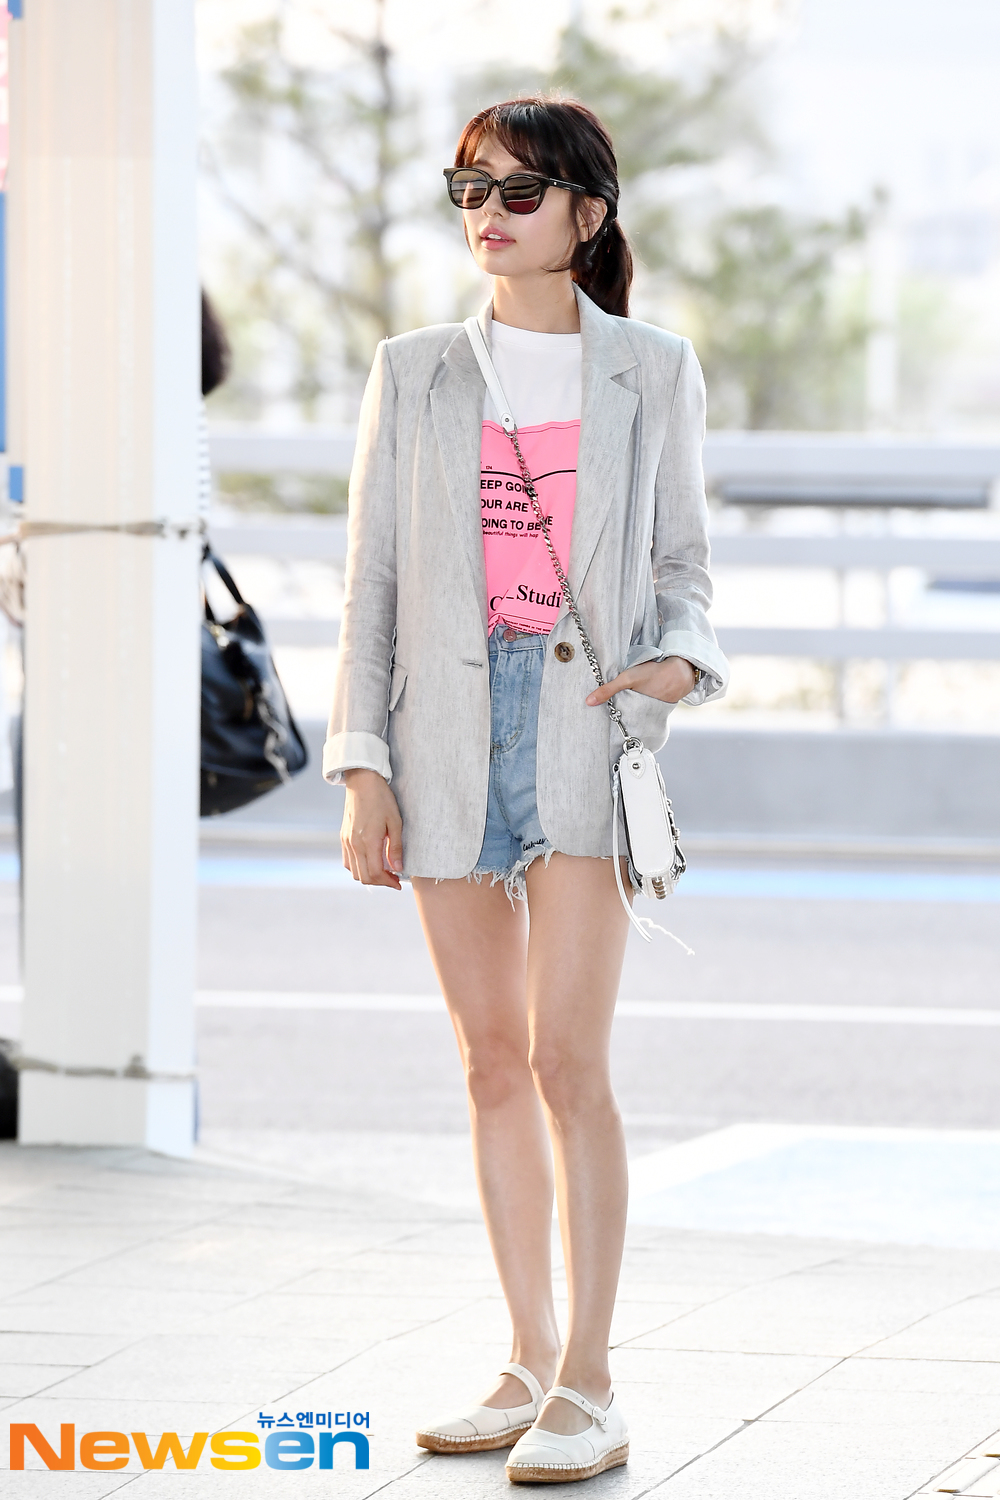 <p>Actress Jung So-min 5 month 3 days afternoon, Incheon Jung-operation in Incheon International Airport through fashion magazine photo shoot car Hawaii Honolulu Departure.</p><p>Actress Jung So-min In this Airport fashion, and Hawaii Honolulu Departure.</p>